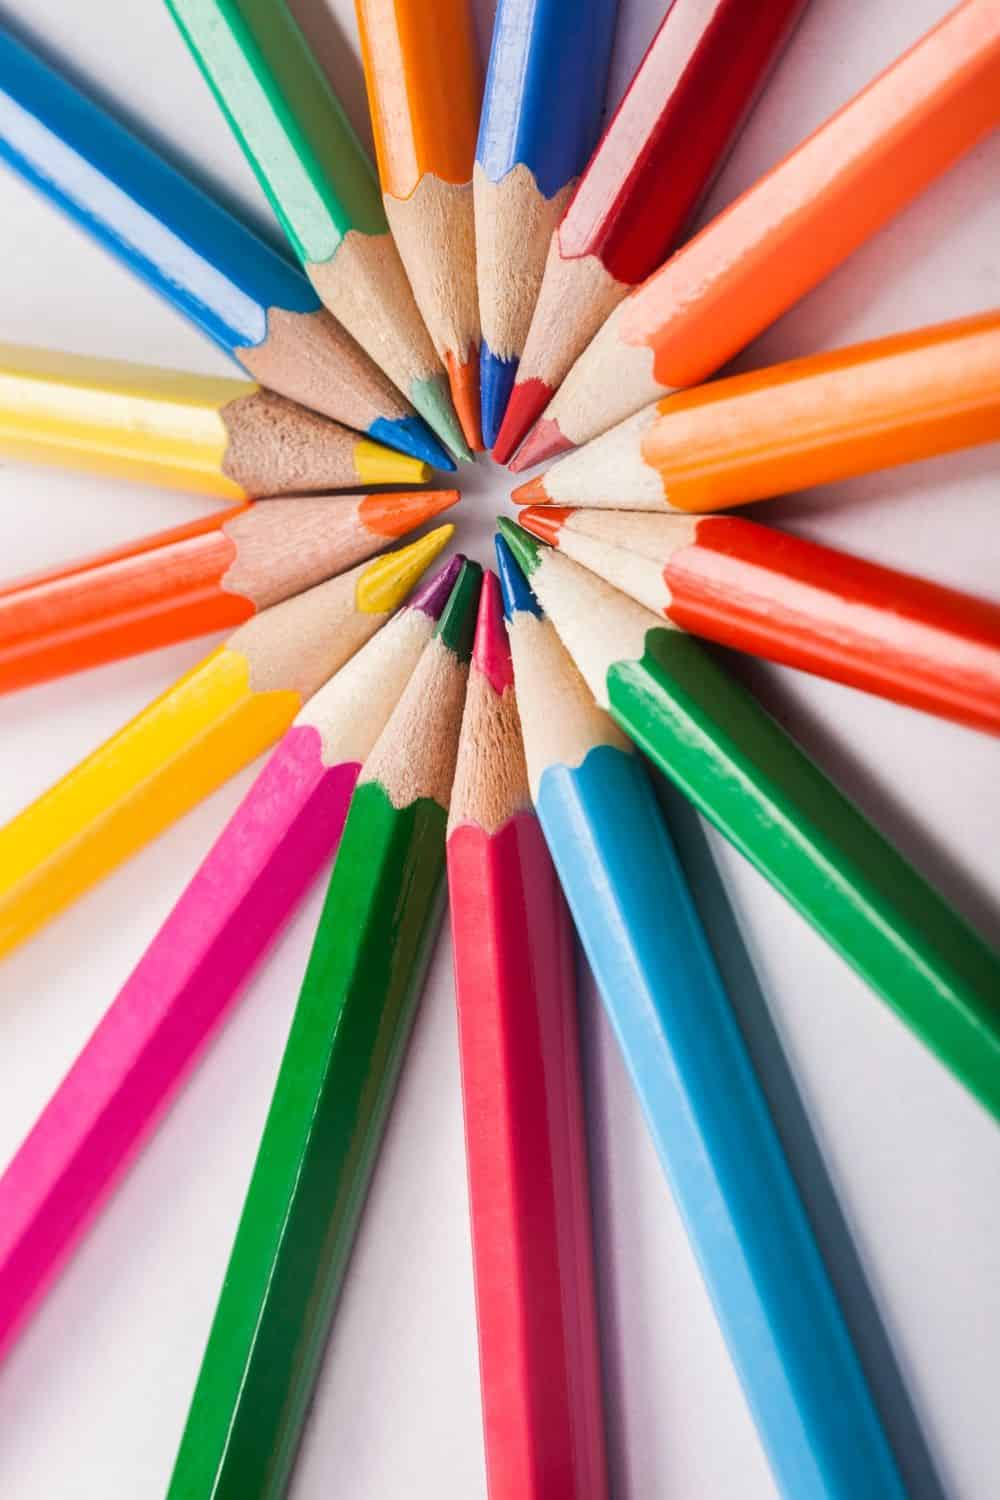 Coloring is not just for kids. Adults need a creative outlet too. Let your creativity soar. Download and print any of these Free Adult Coloring Pages.